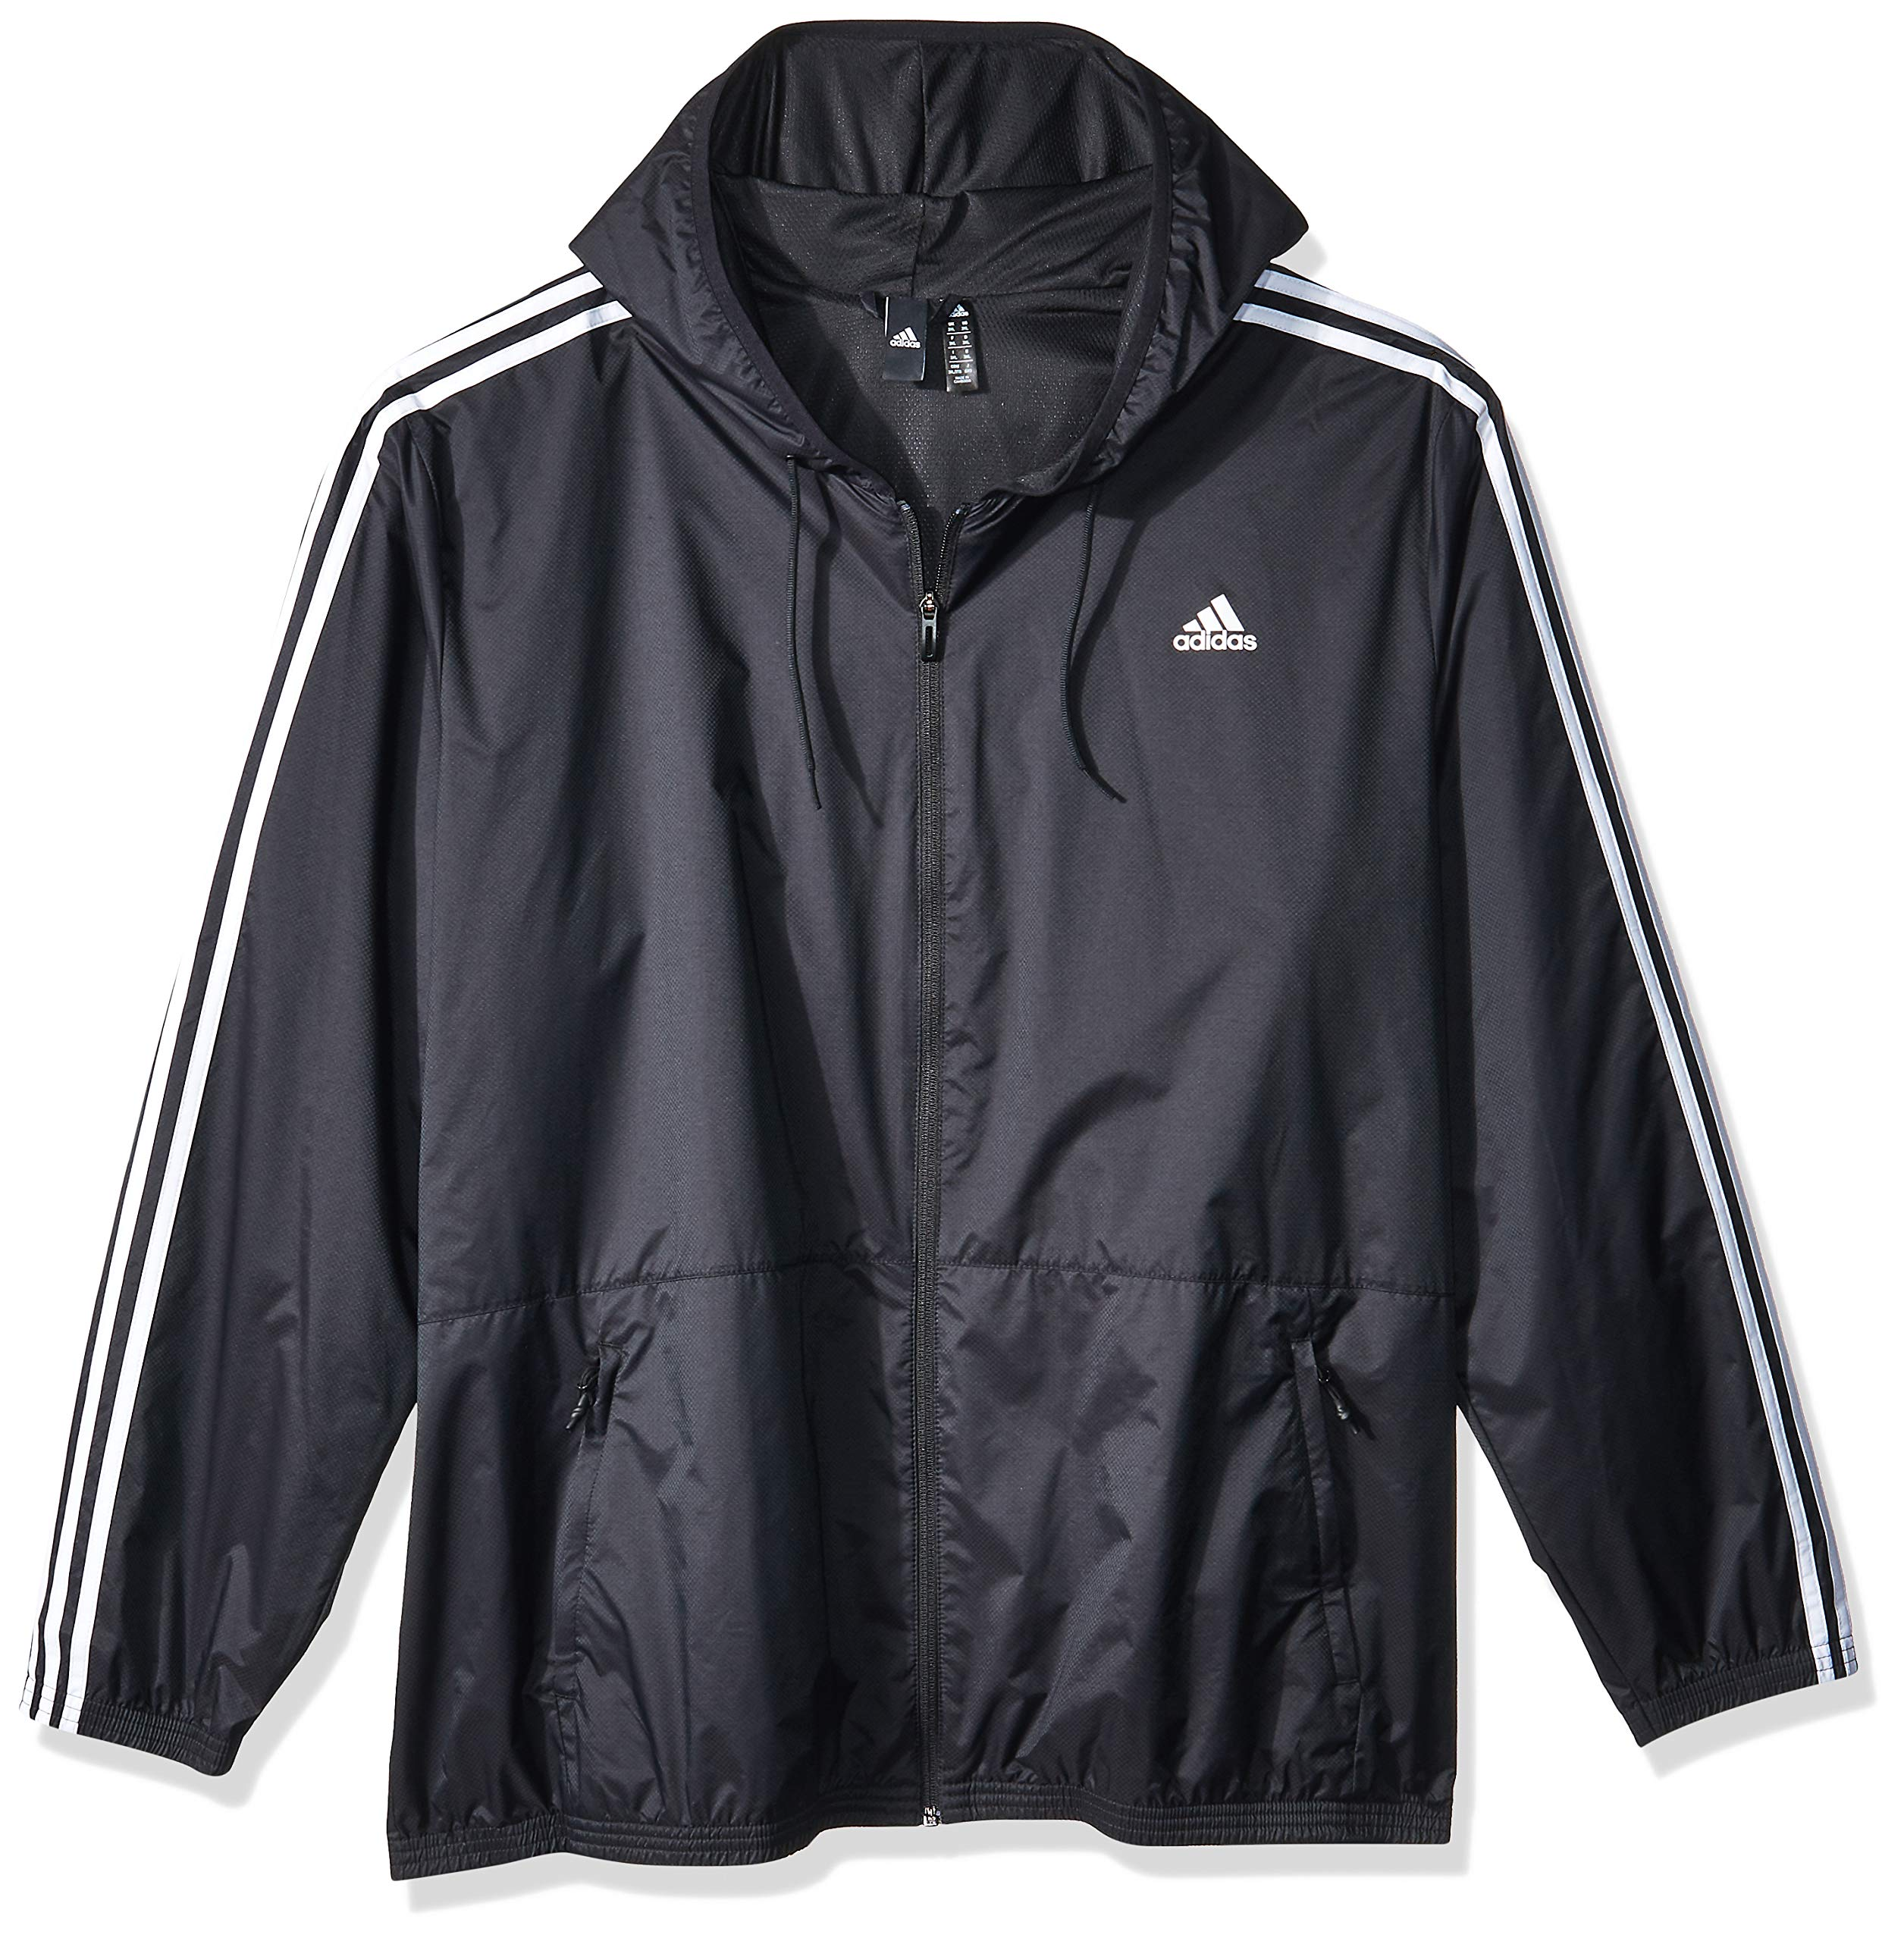 adidas Men's Essentials Wind Jacket, Black/Black/White, 3X-Large by adidas (Image #1)